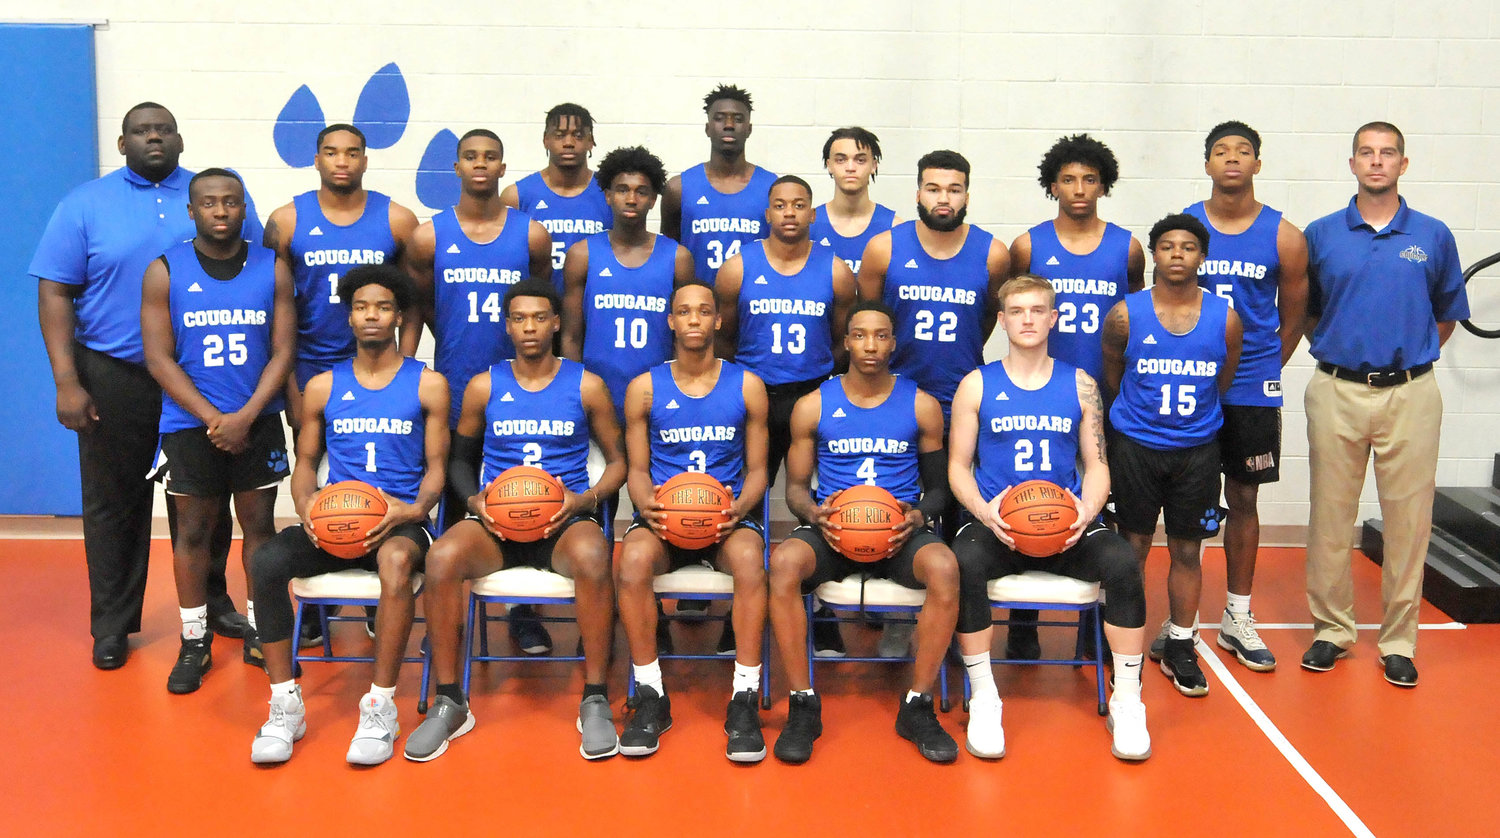 Central Carolina Community College's men's basketball team poses for a photo. The Cougars will tip off their season next Saturday, Nov. 2 at home against Vance Granville Community College.